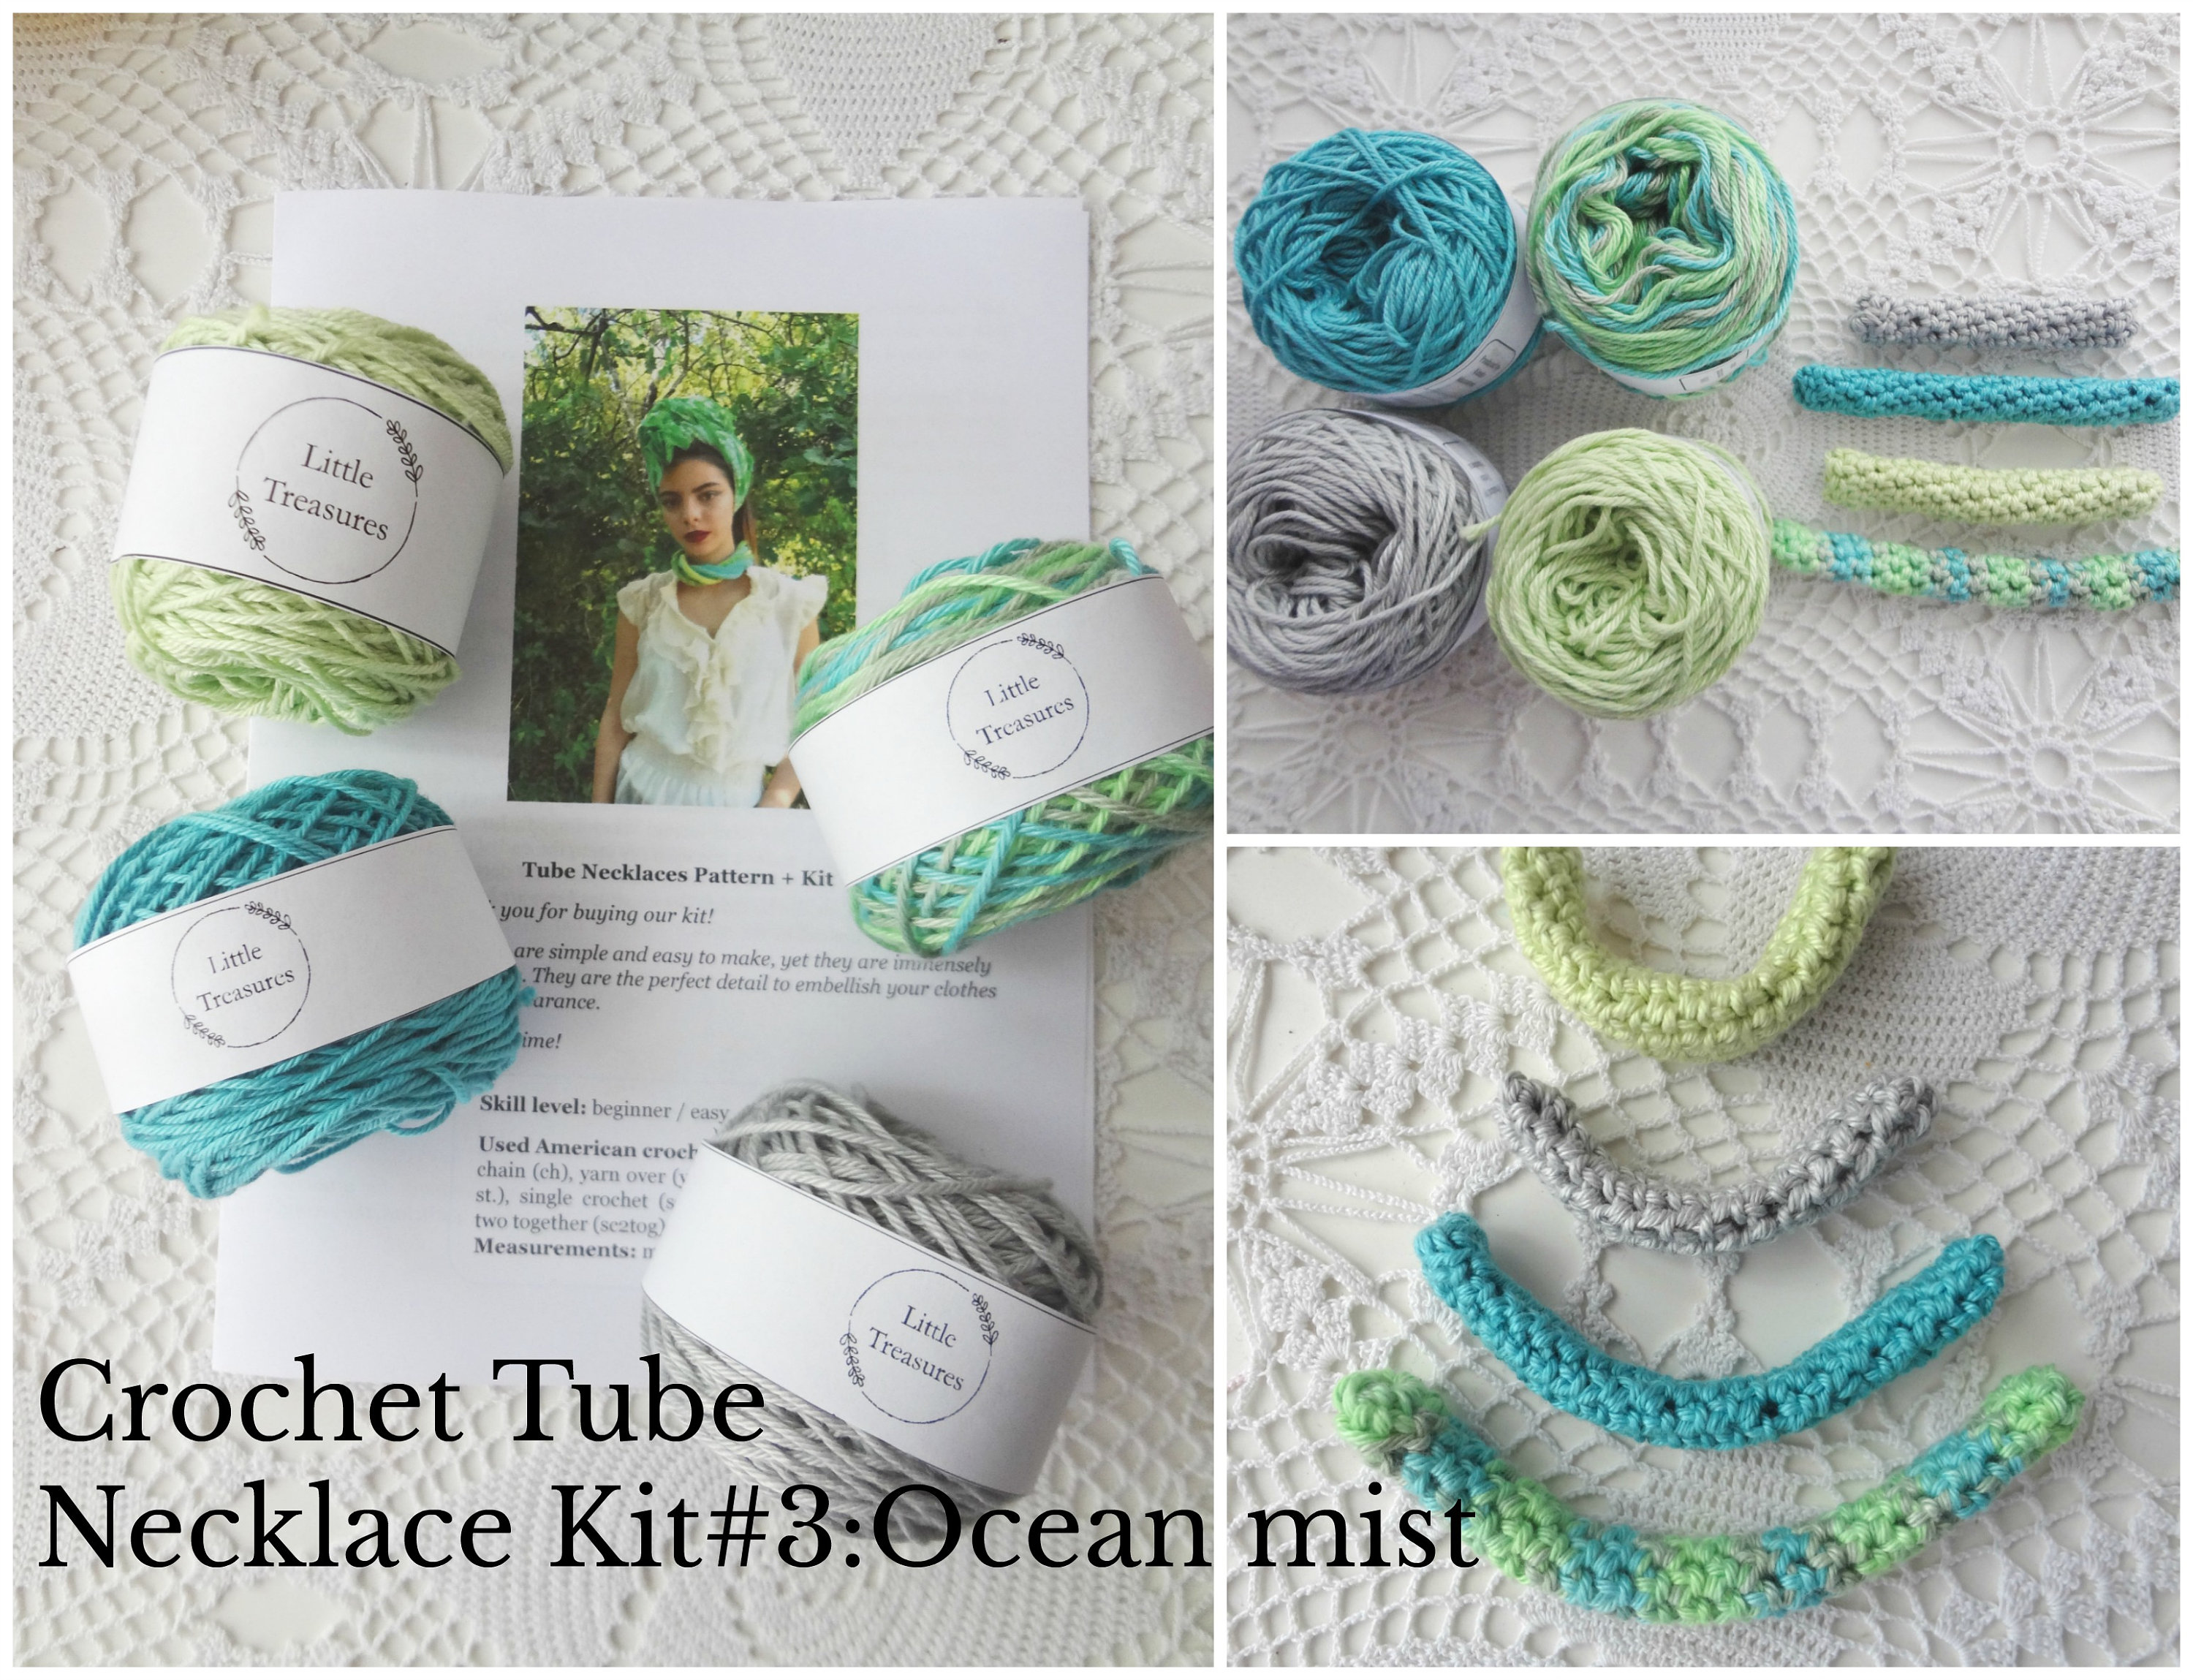 Crochet Tube Necklace Kit Yarn Pattern 3ocean Mistcrochet Etsy